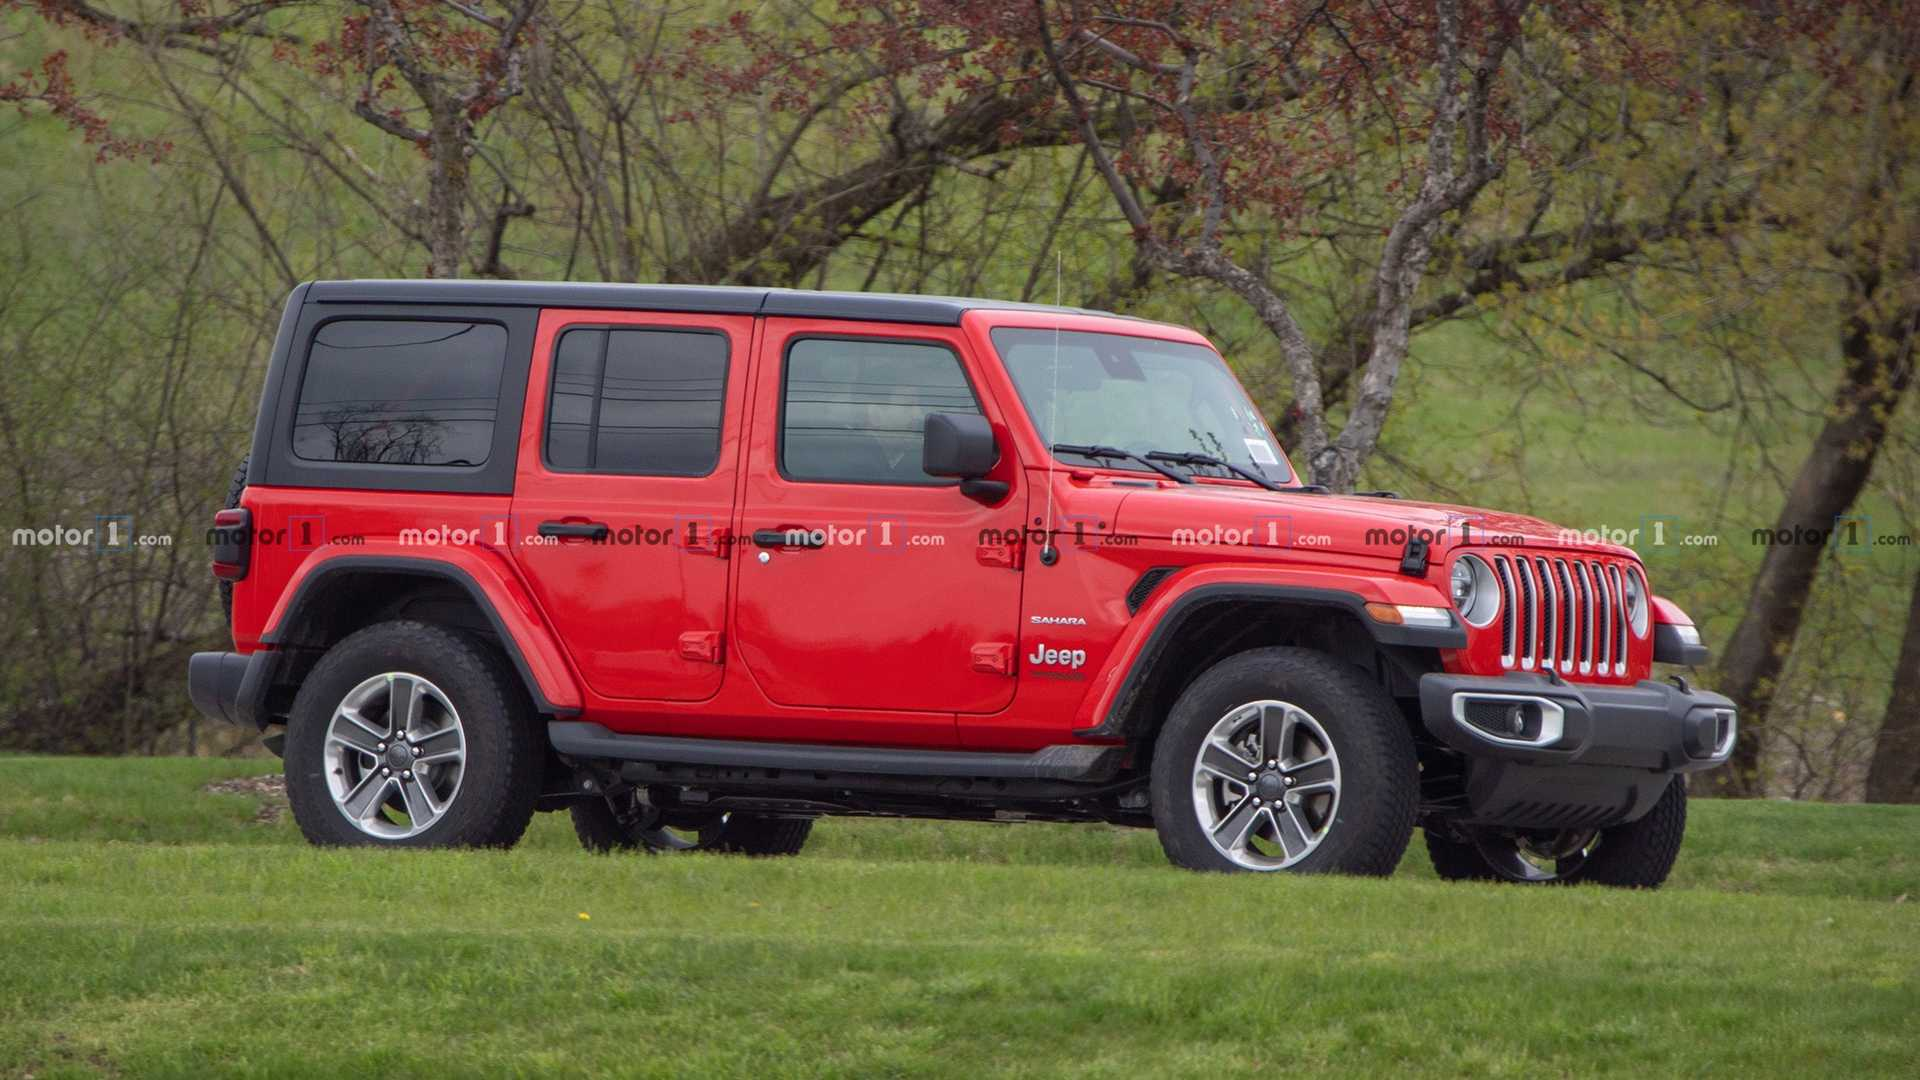 Diesel Jeep Wrangler >> 2020 Jeep Wrangler Diesel V6 Announced With 442 Lb Ft